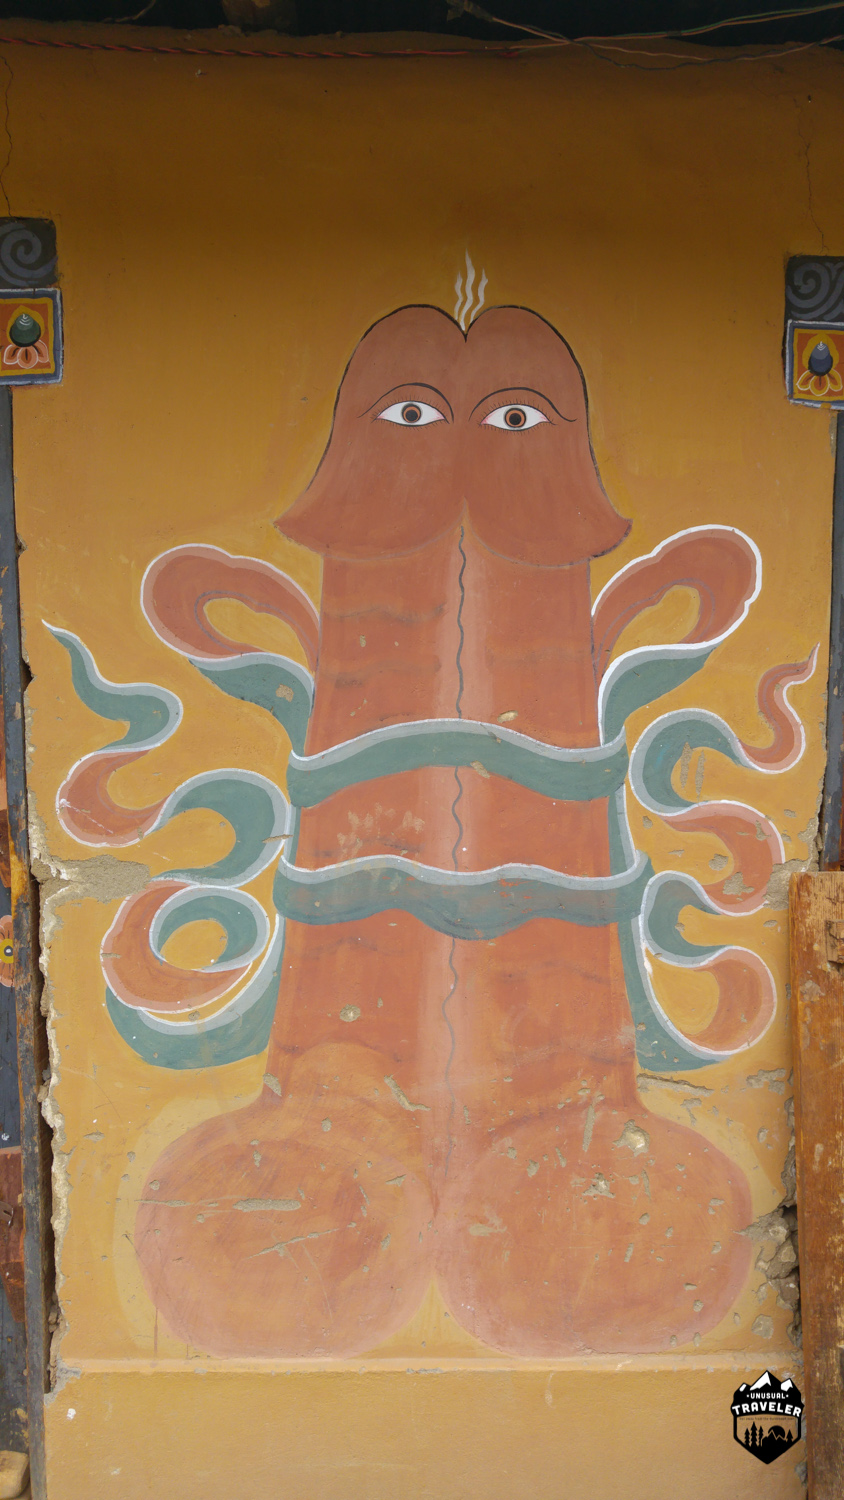 It is symbolic of the teachings of Drukpa Kunley, an eccentric saint who travelled in Bhutan